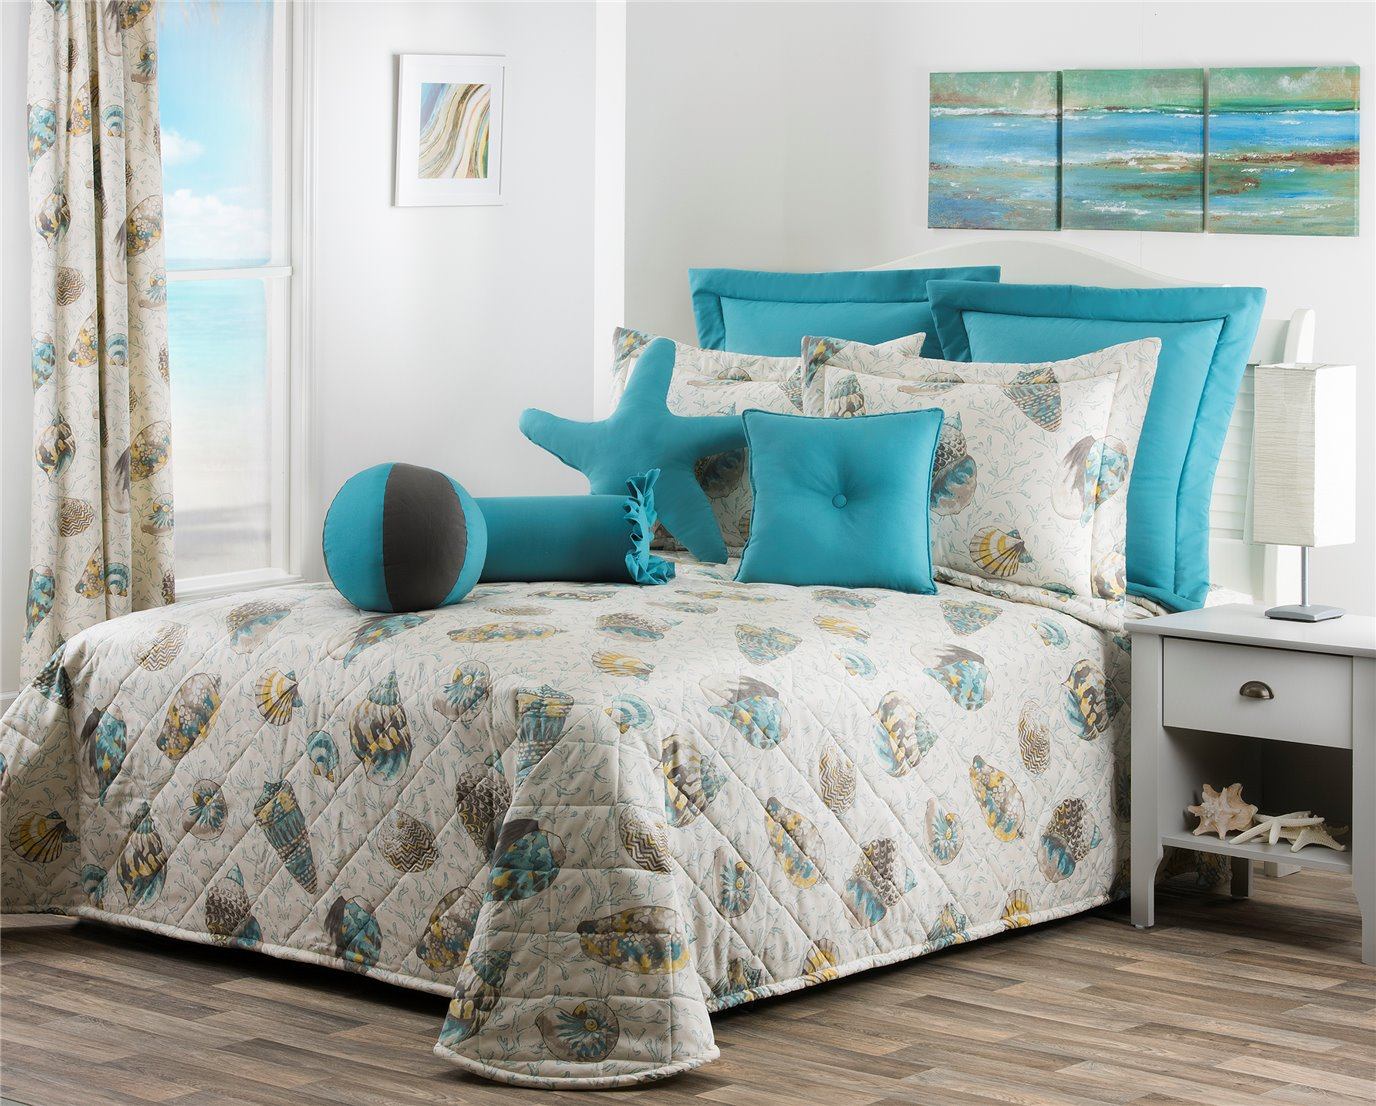 Seaside Treasures Caribbean Full Bedspread